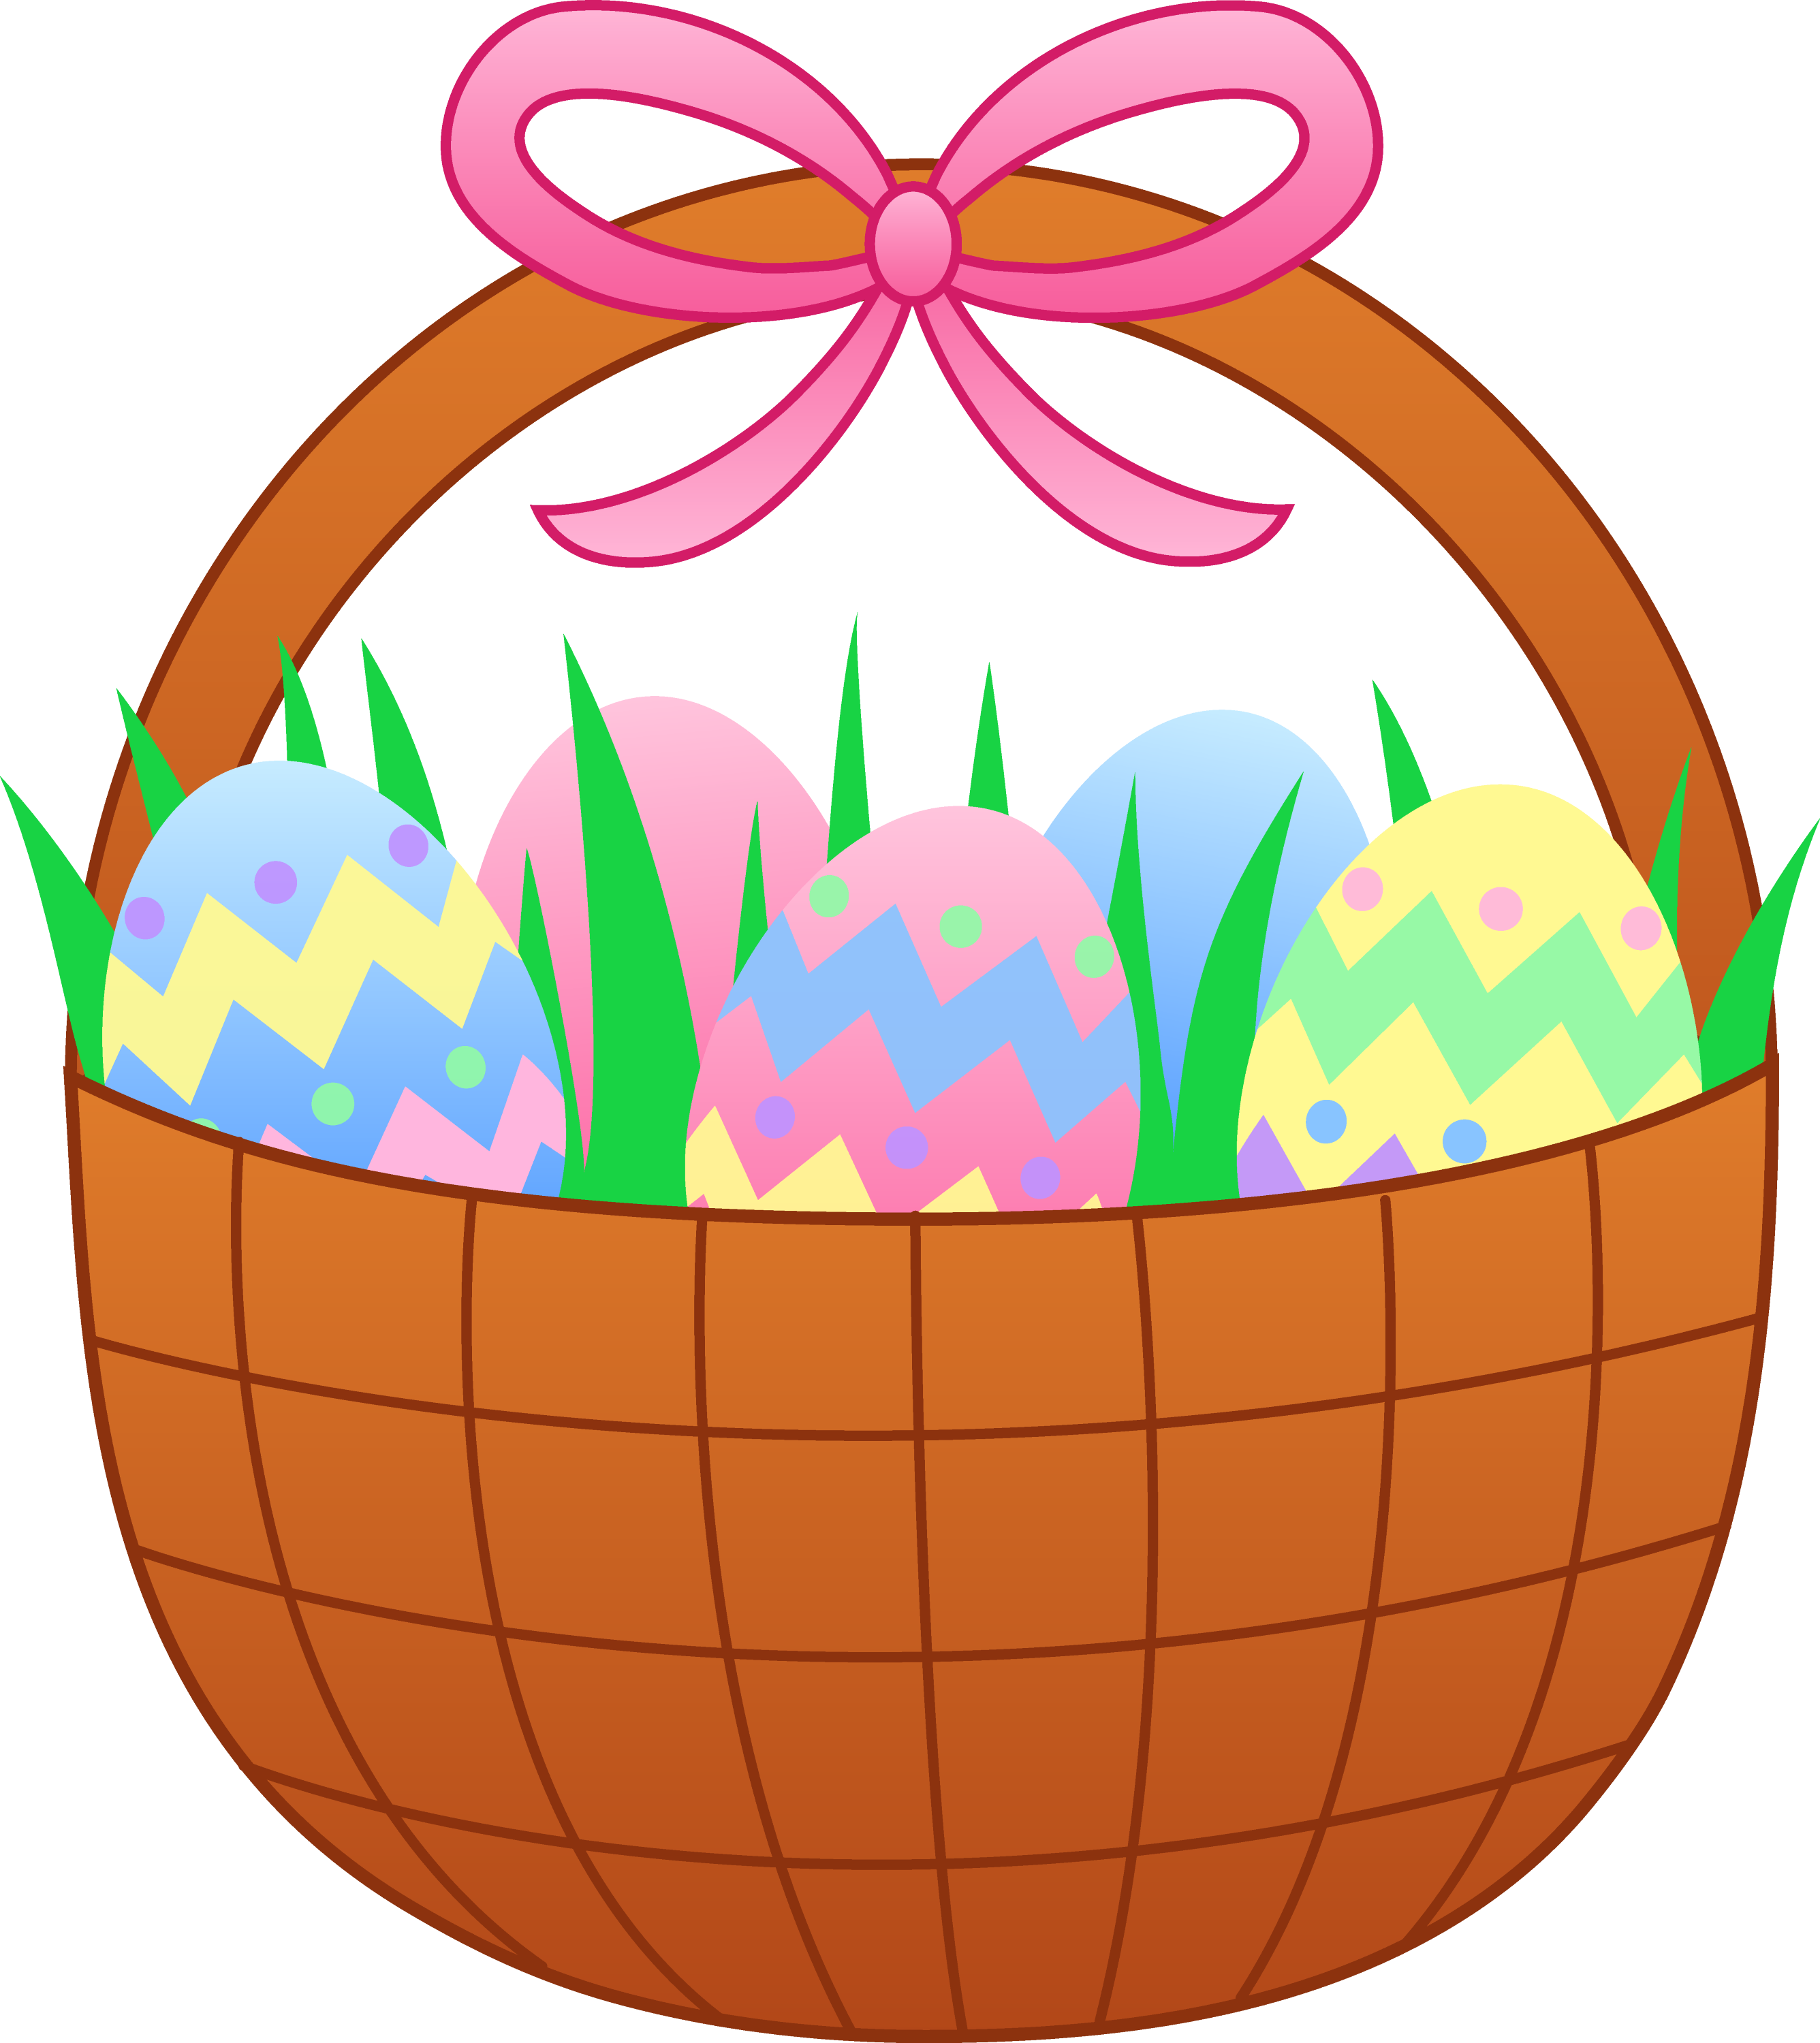 easter basket with colorful eggs free clip art rh sweetclipart com basketball clipart png basketball clipart free